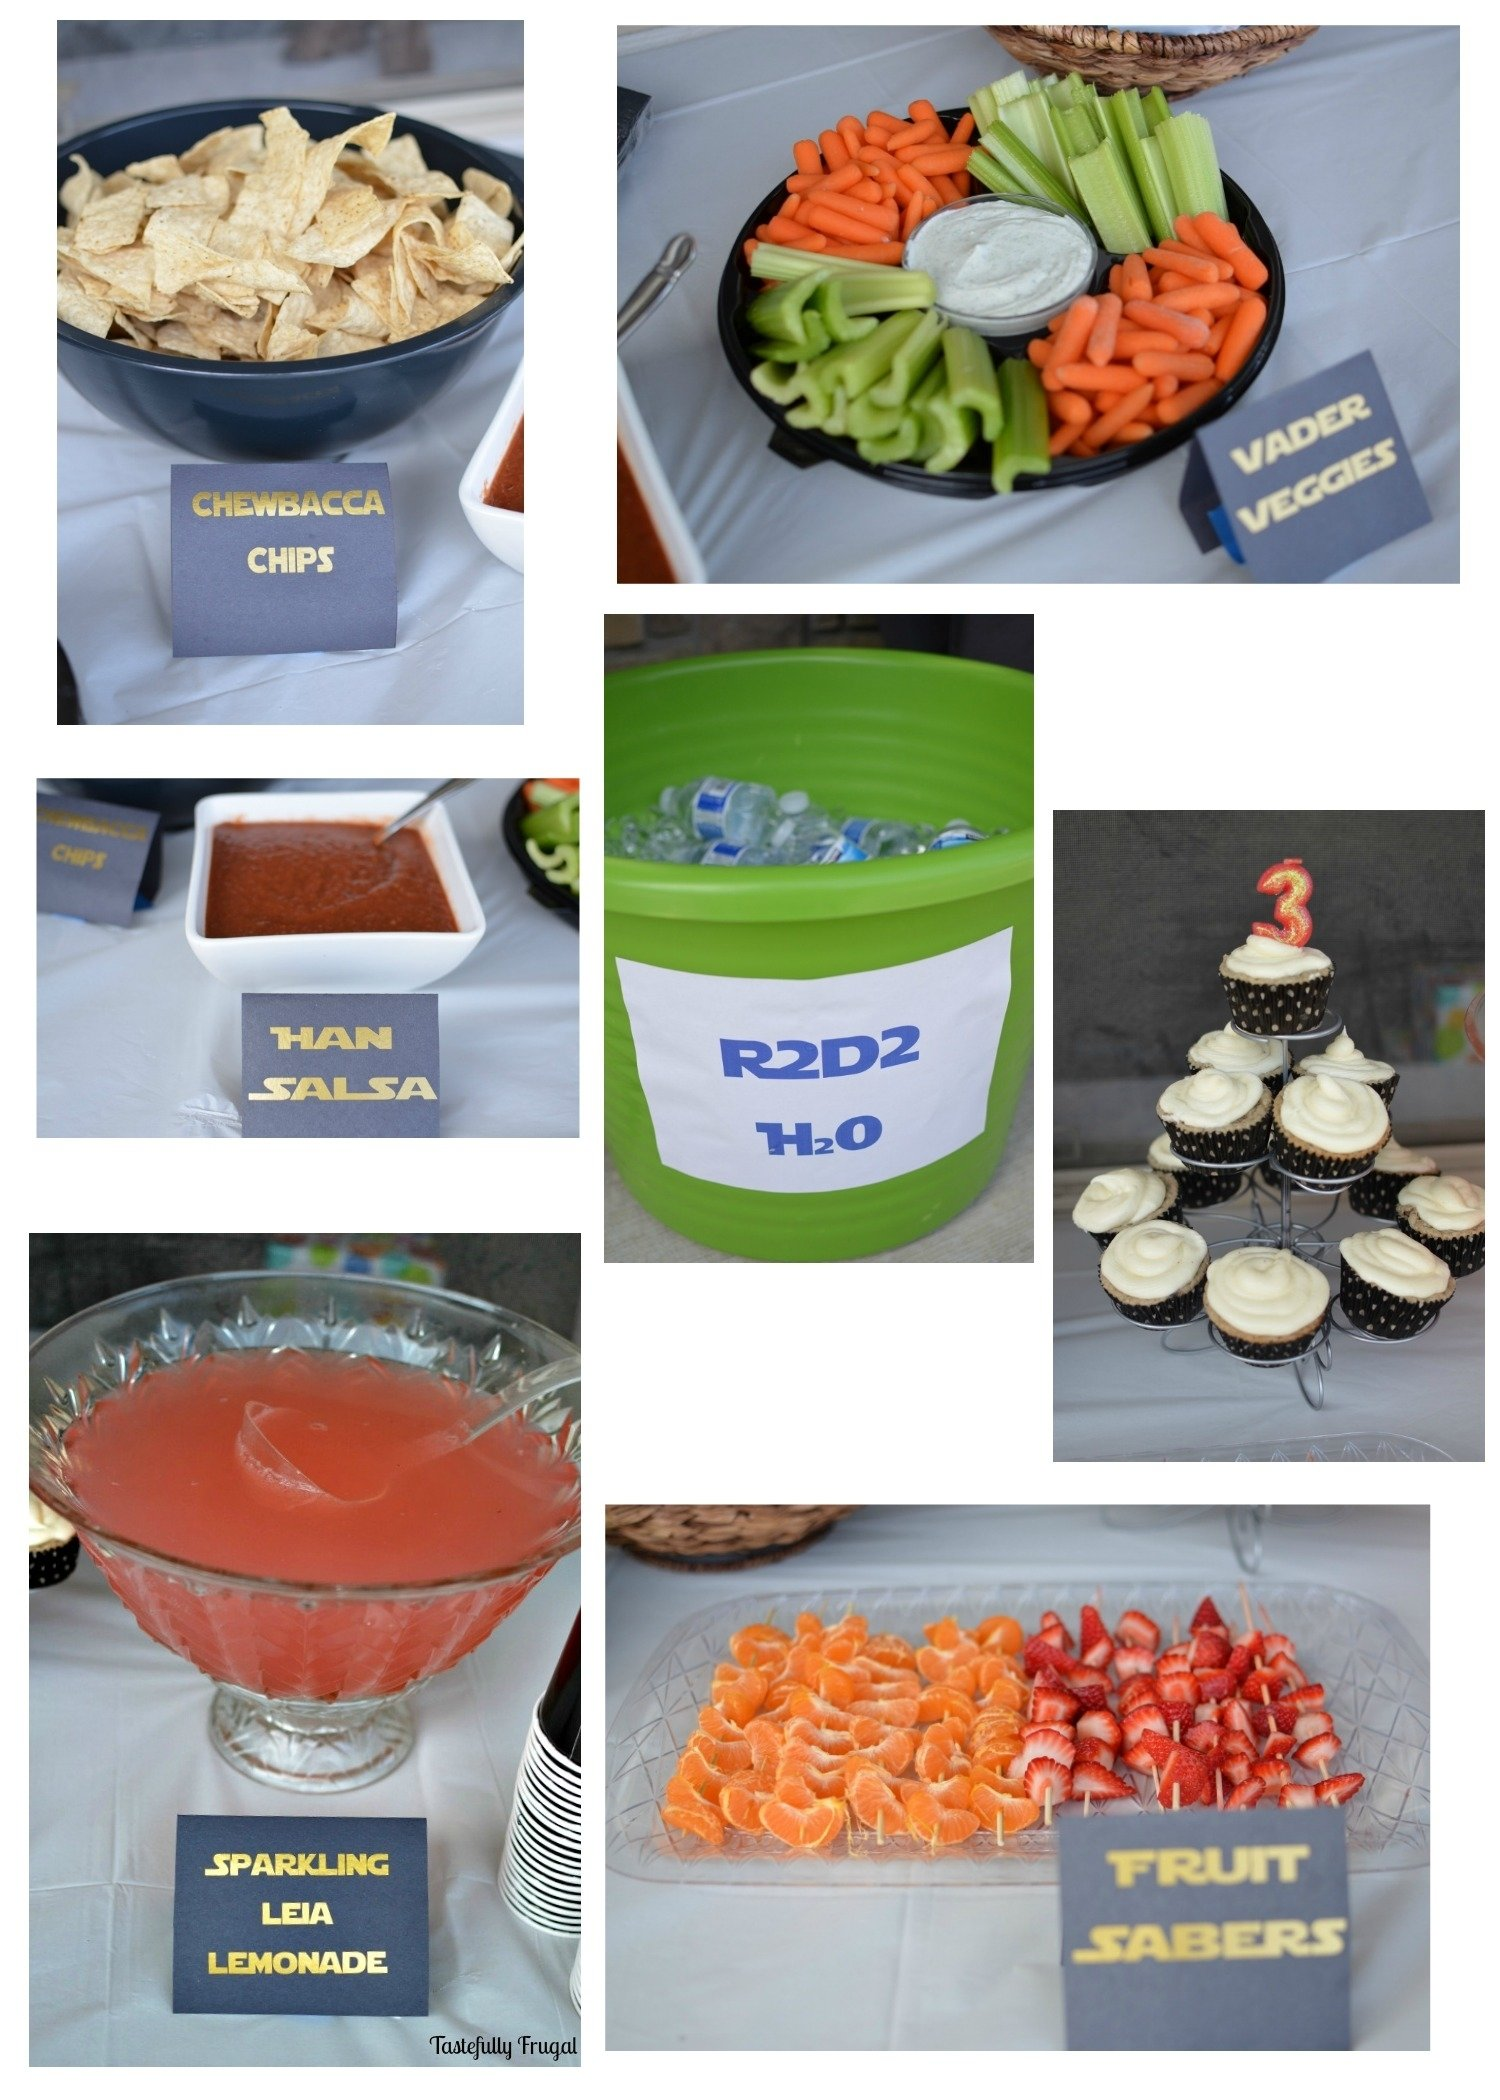 10 Unique Star Wars Party Food Ideas star wars party on a budget 2020